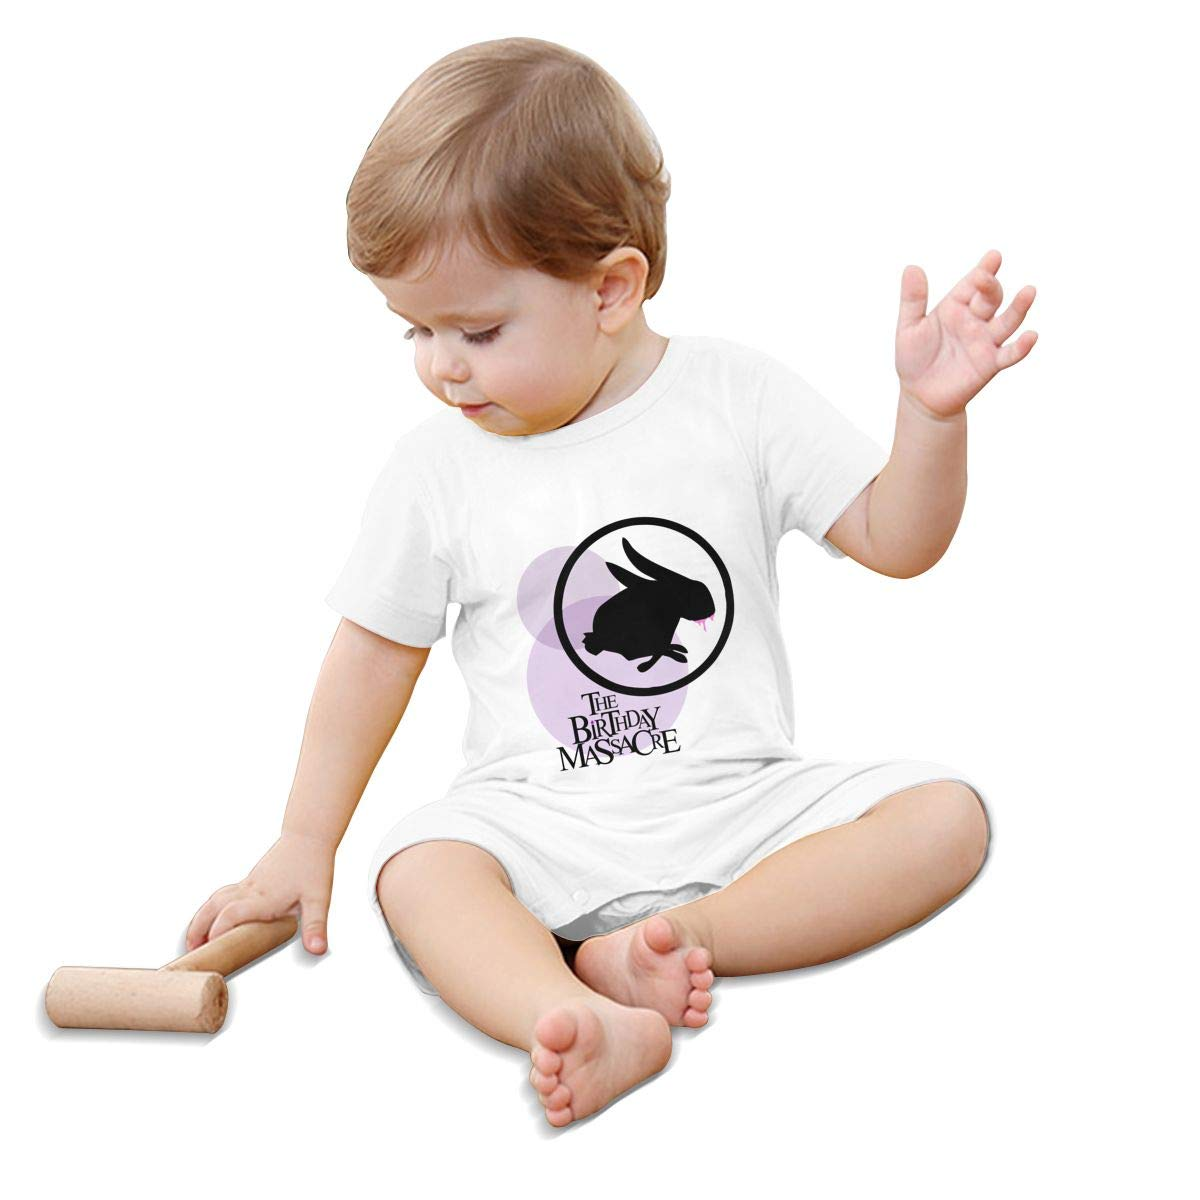 RhteGui The Birthday Massacre Rompers Solid Infant Short Sleeve Pajamas Unisex Cotton Summer for 0-24 Months